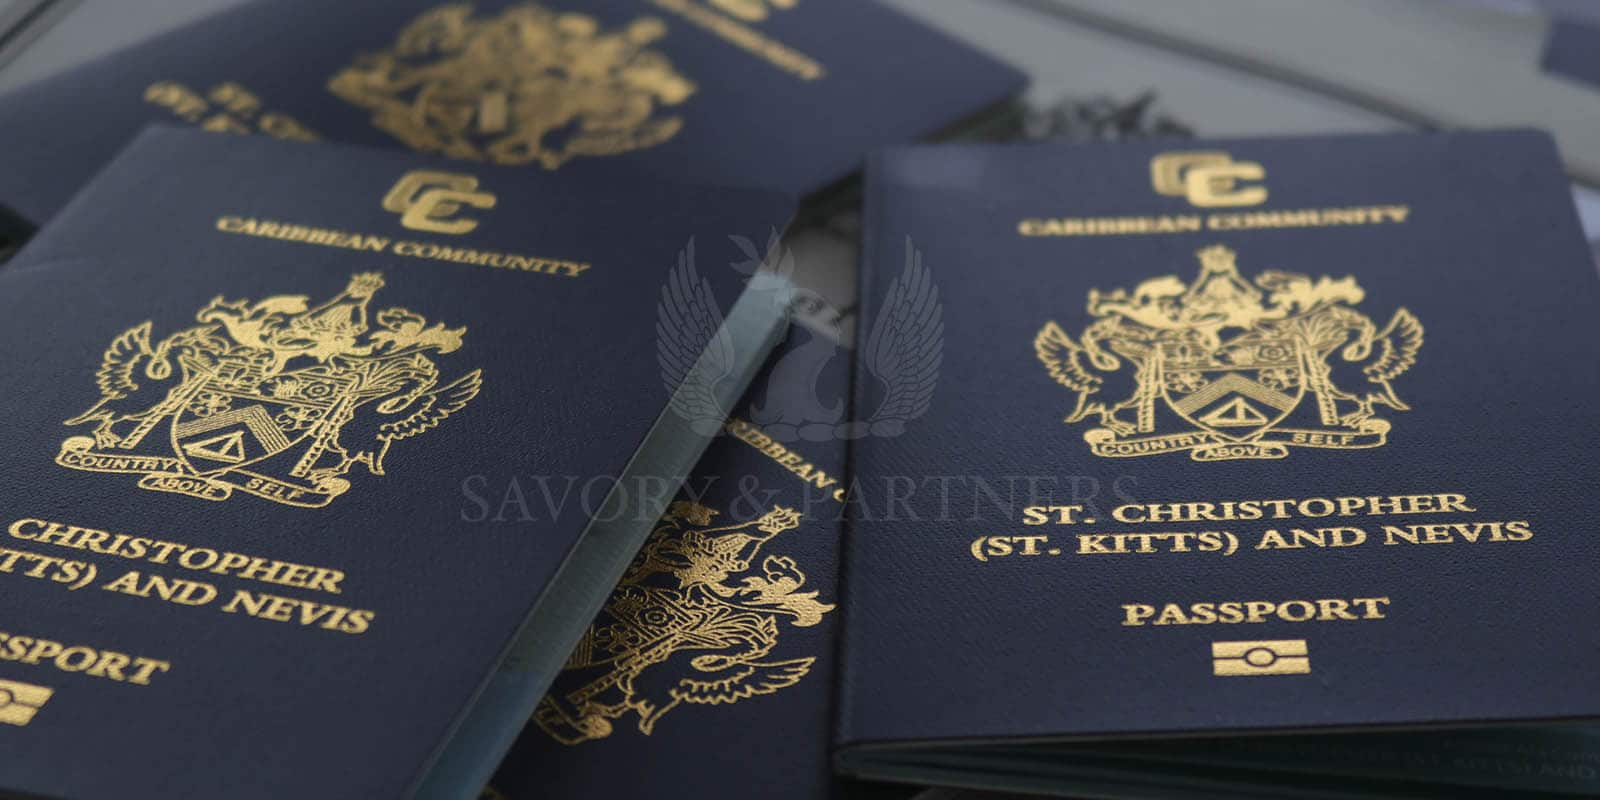 St Kitts and Nevis citizenship by investment program